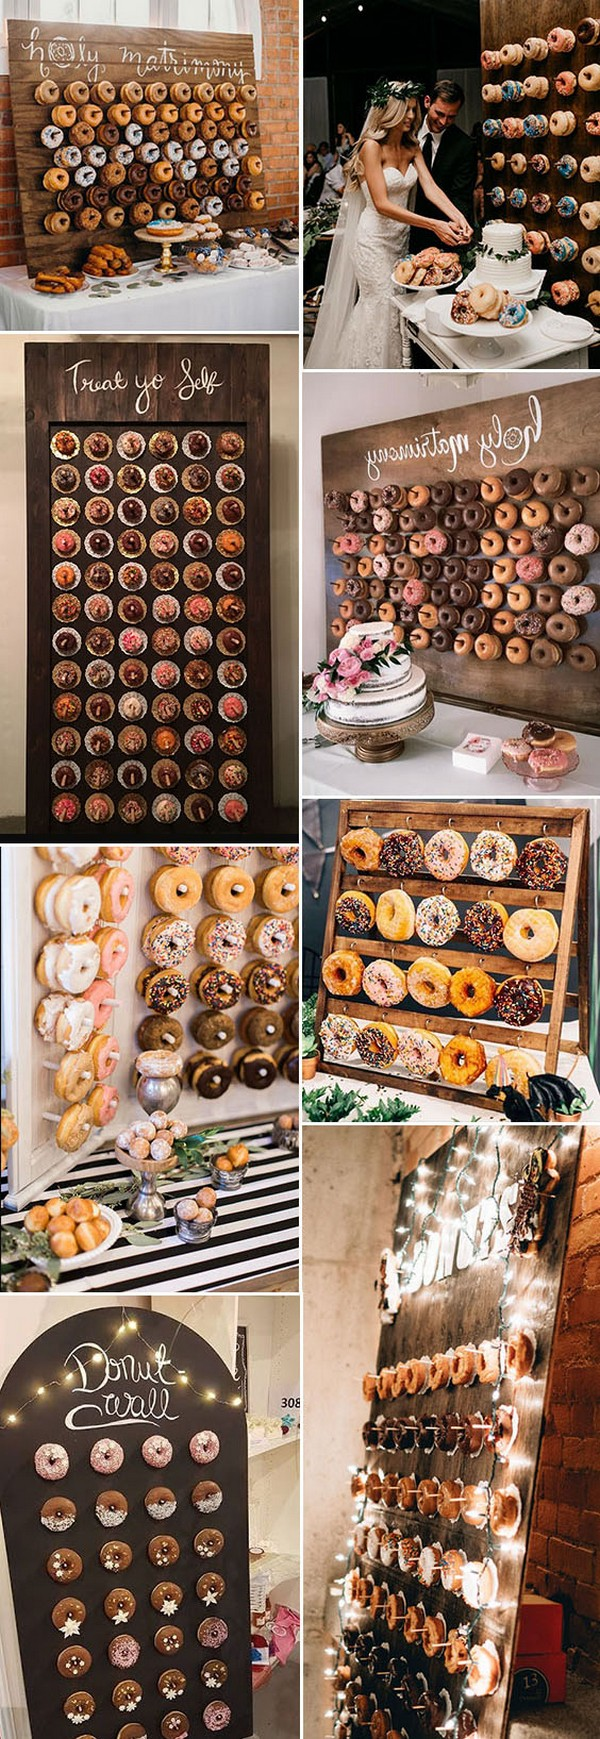 Donuts Wall Donut Display donut display wedding donut display ideas